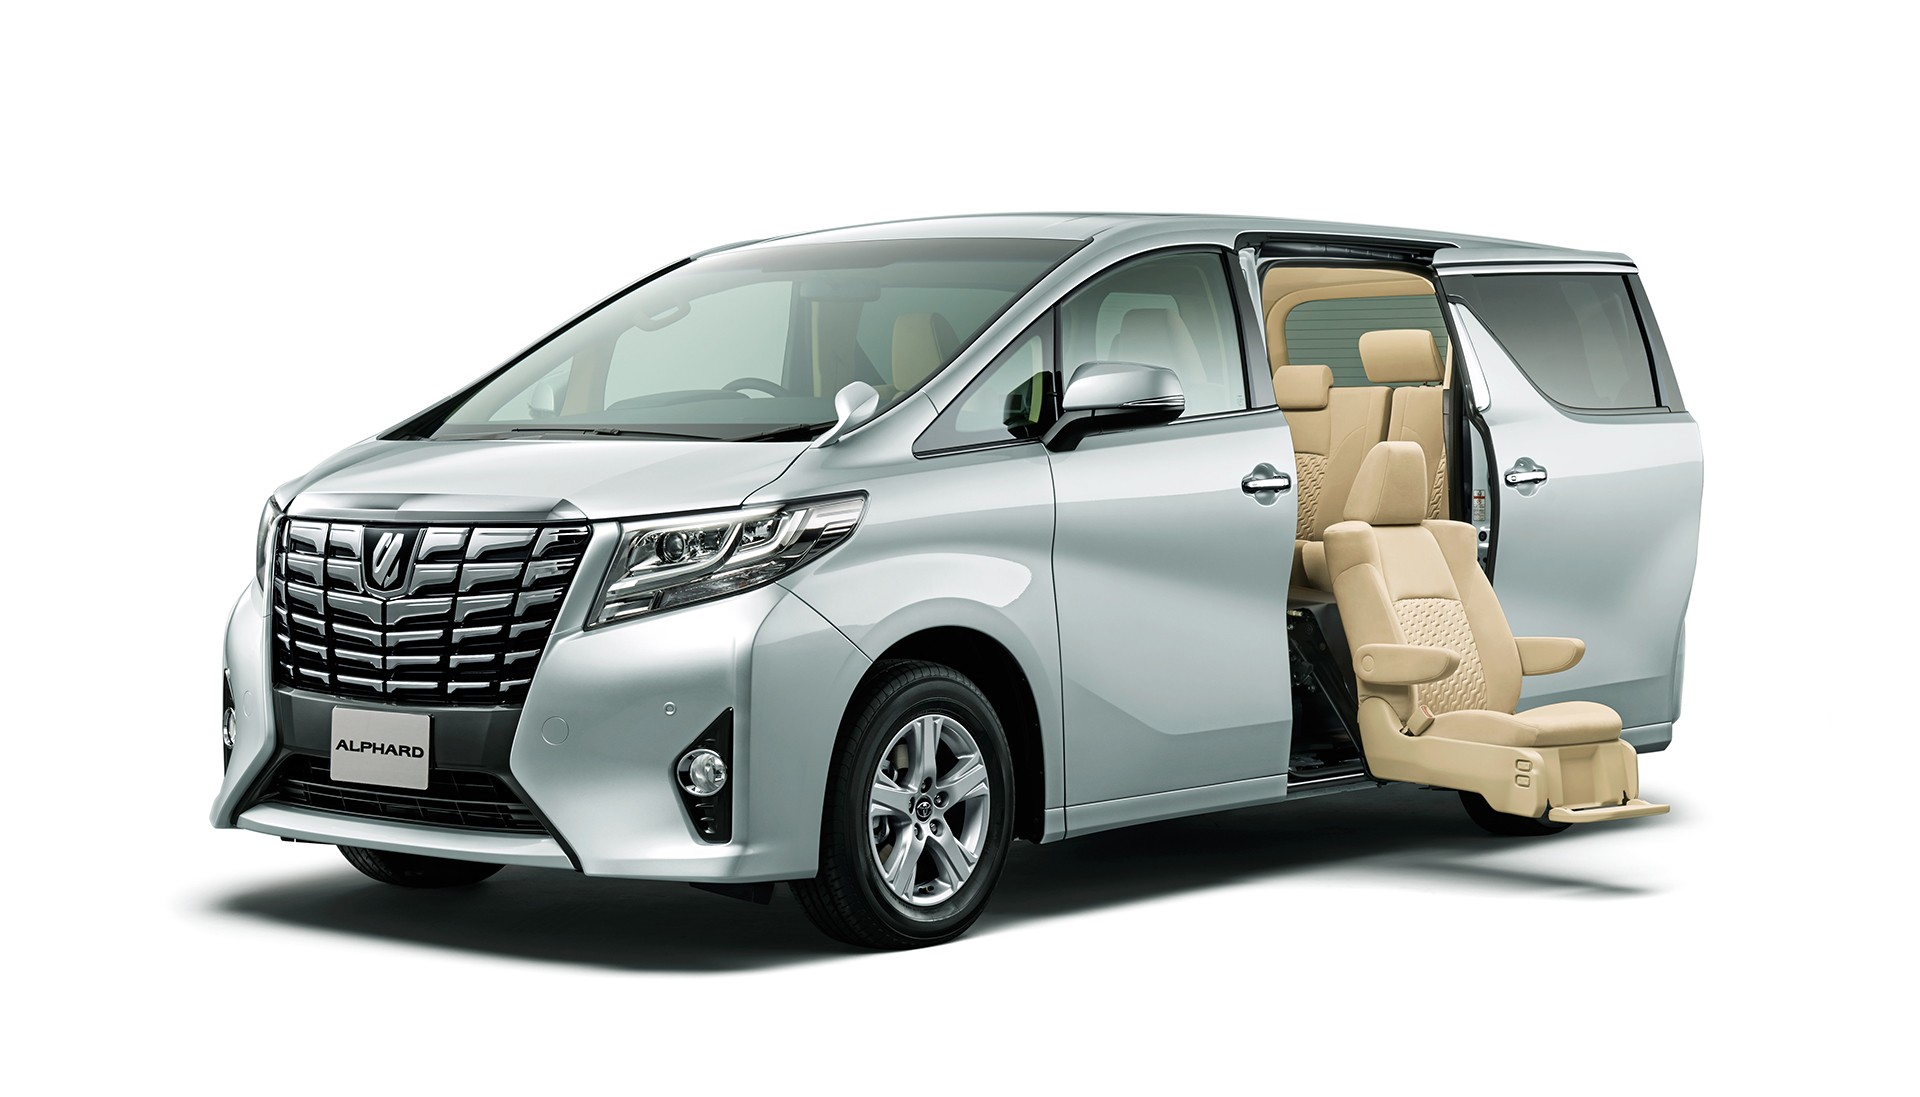 Next Generation Toyota Alphard Is Bolder Than Ever Video